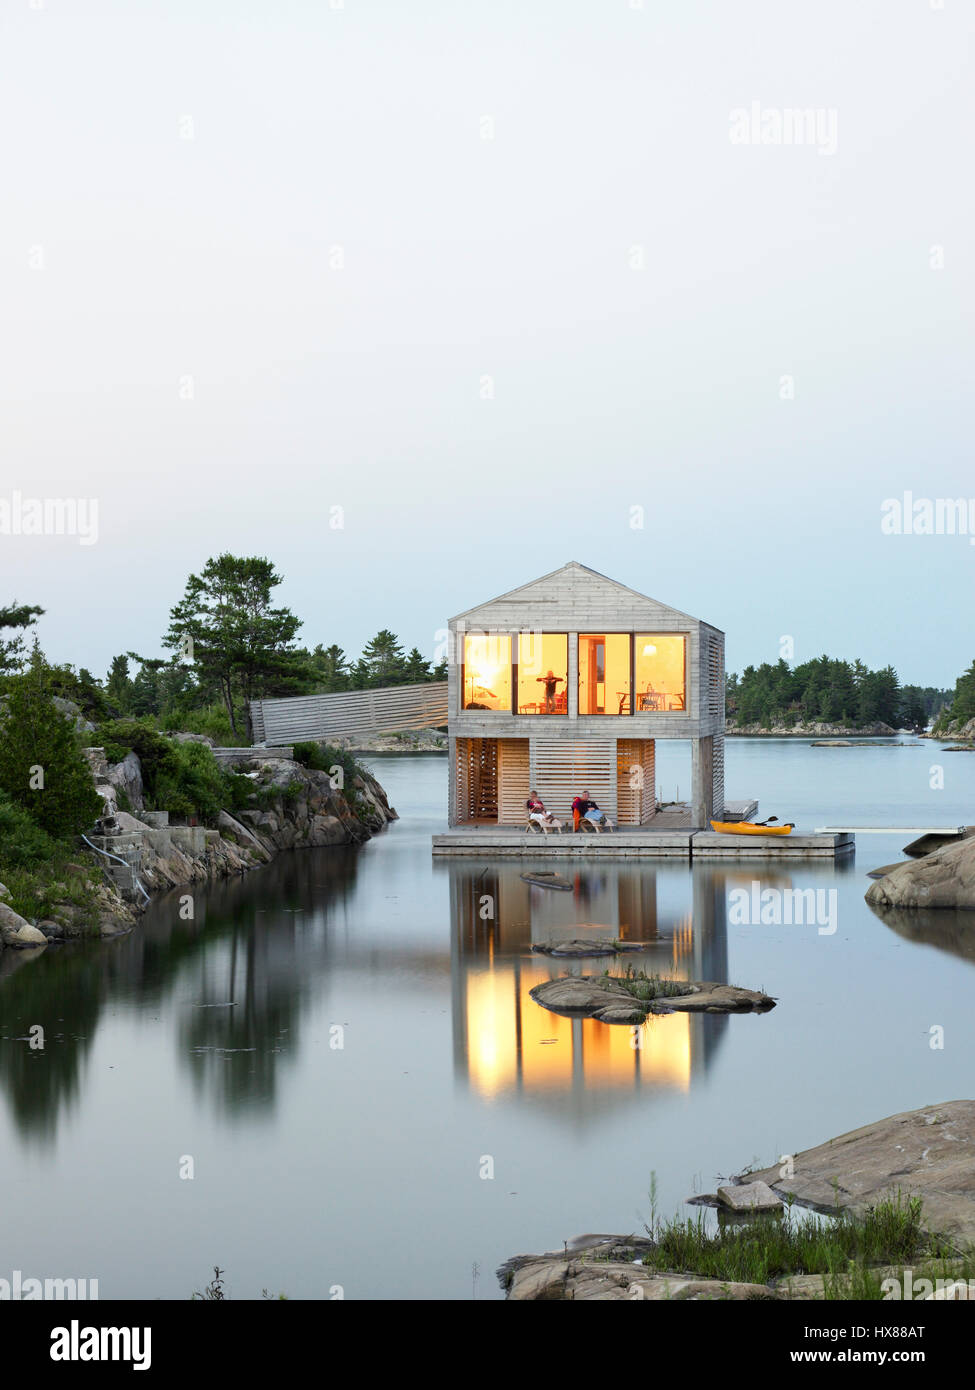 Overall Contextual Exterior View At Dusk. Floating House, Private Island,  Georgian Bay, Lake Huron, Canada. Architect: MOS Architects, 2007 Great Pictures